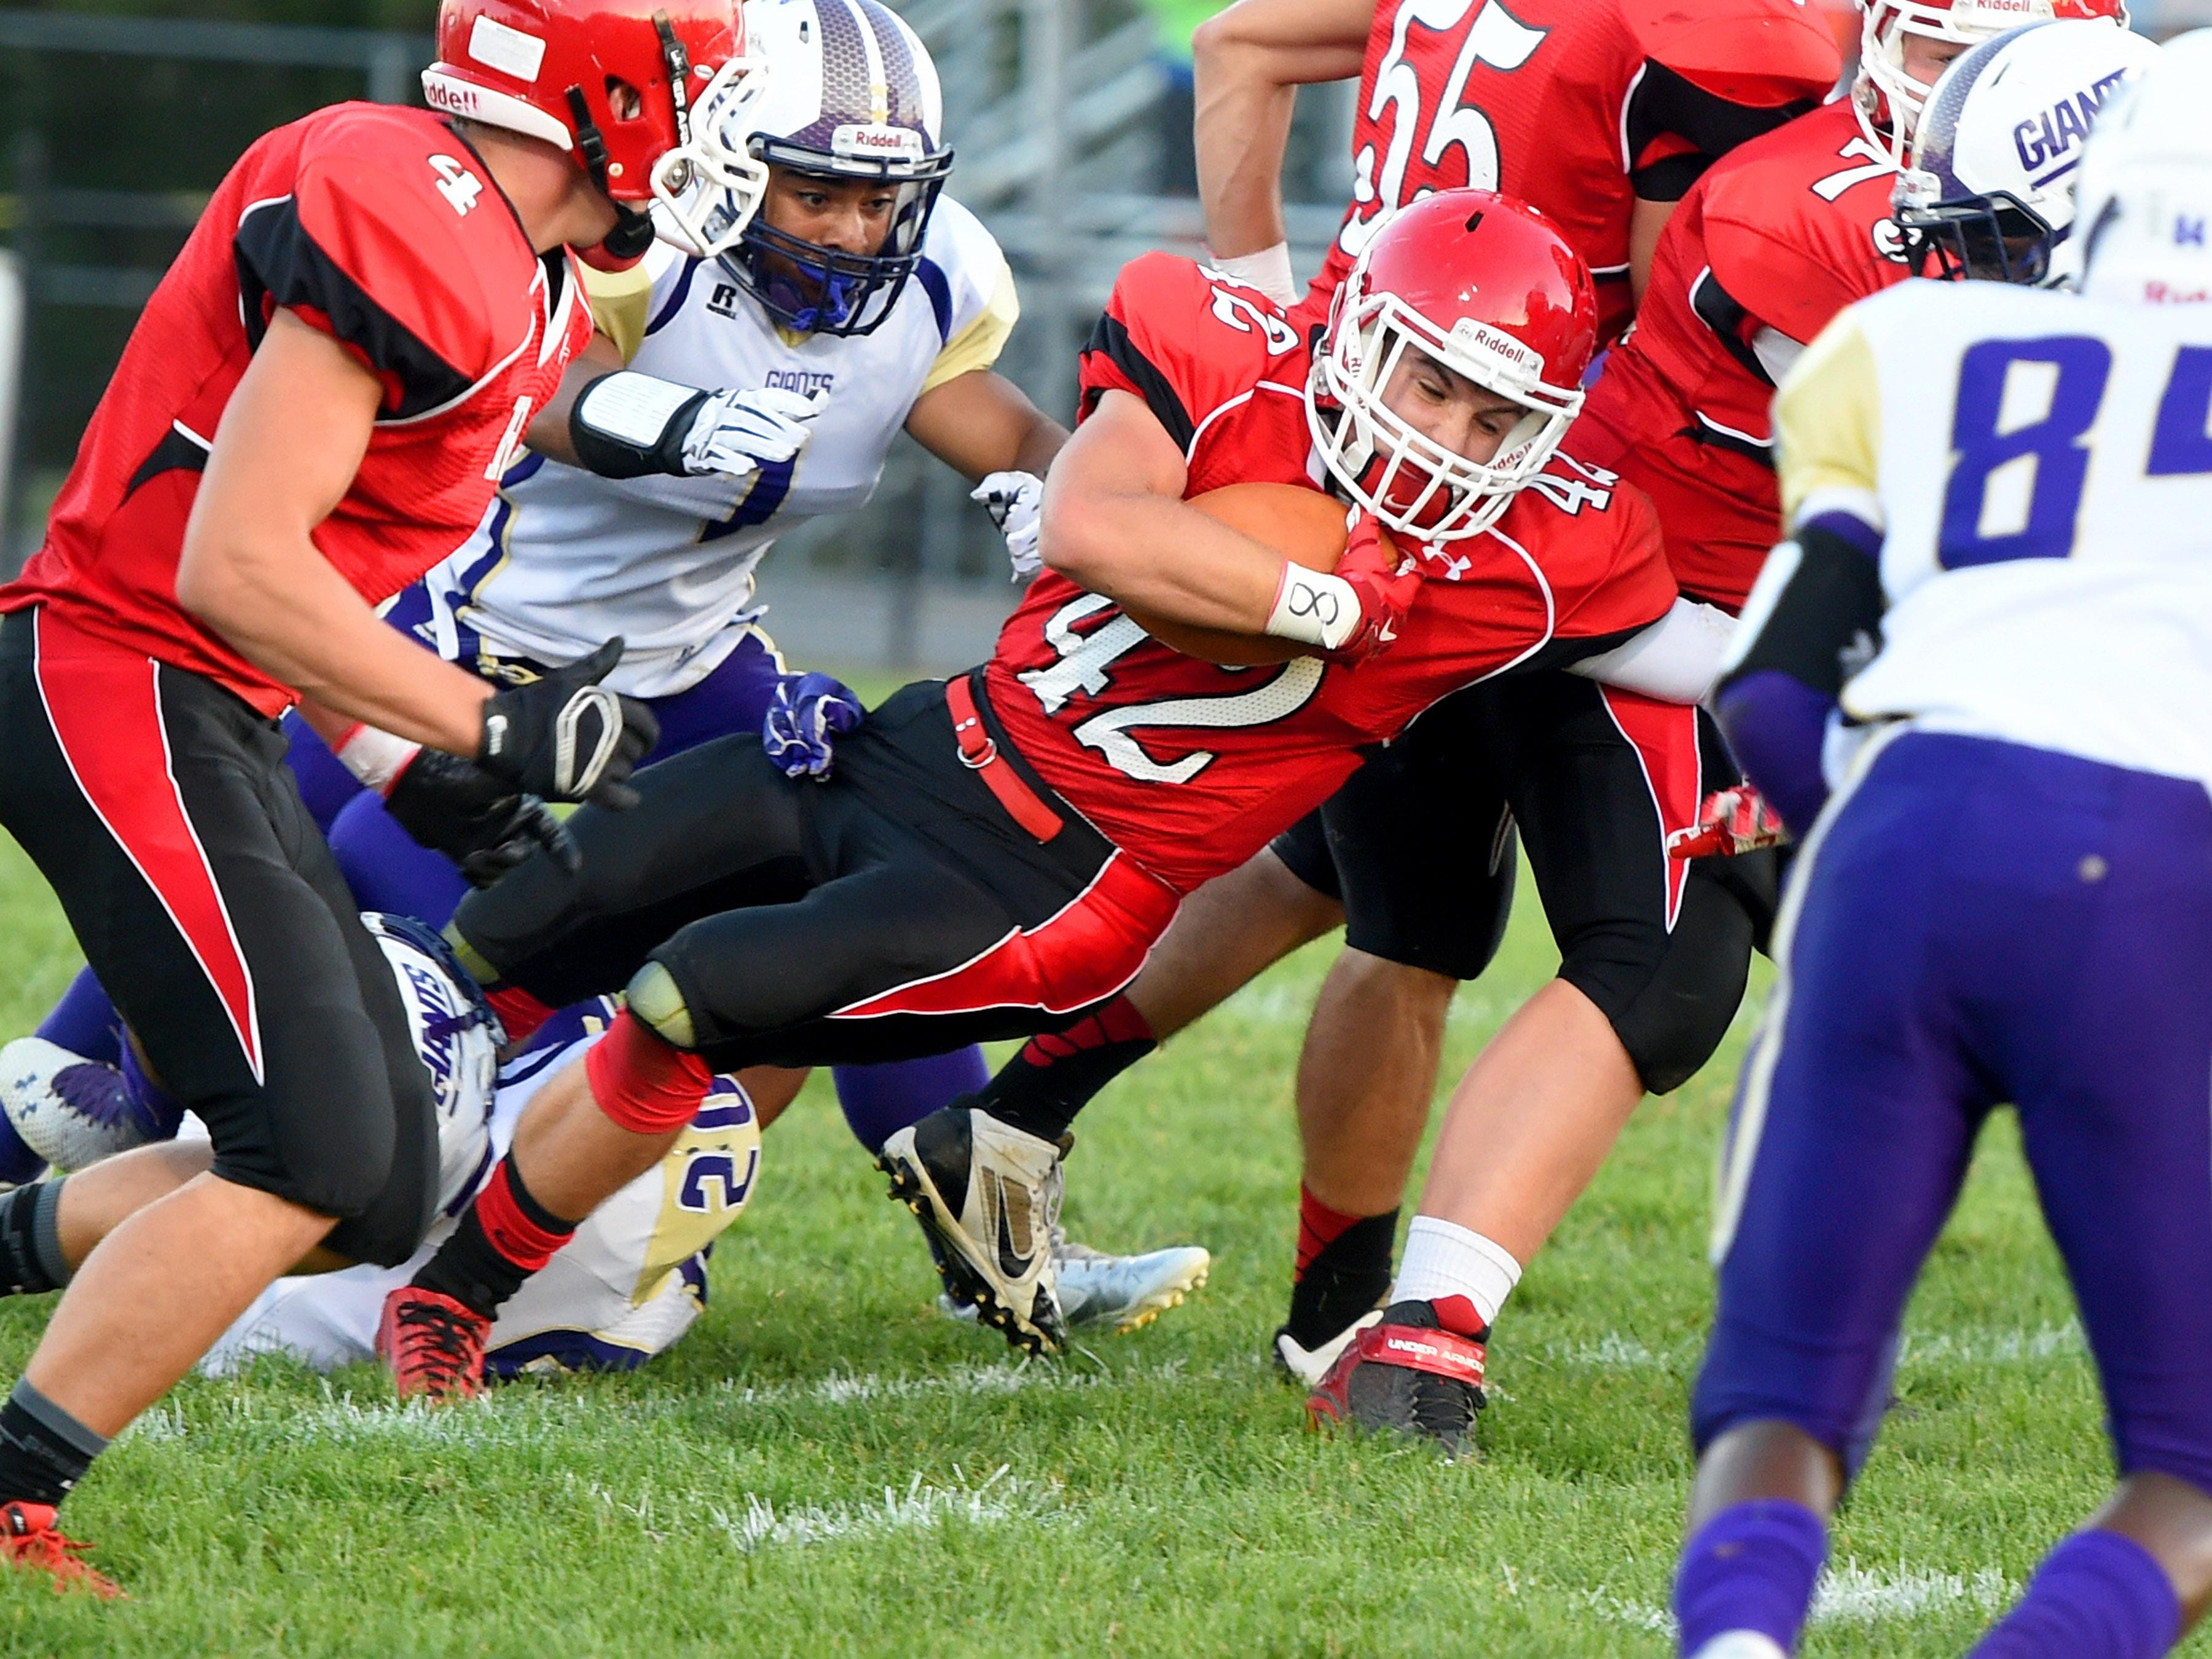 Riverheads' Colt Miller is brought down with the ball during a football game in Greenville on Friday.